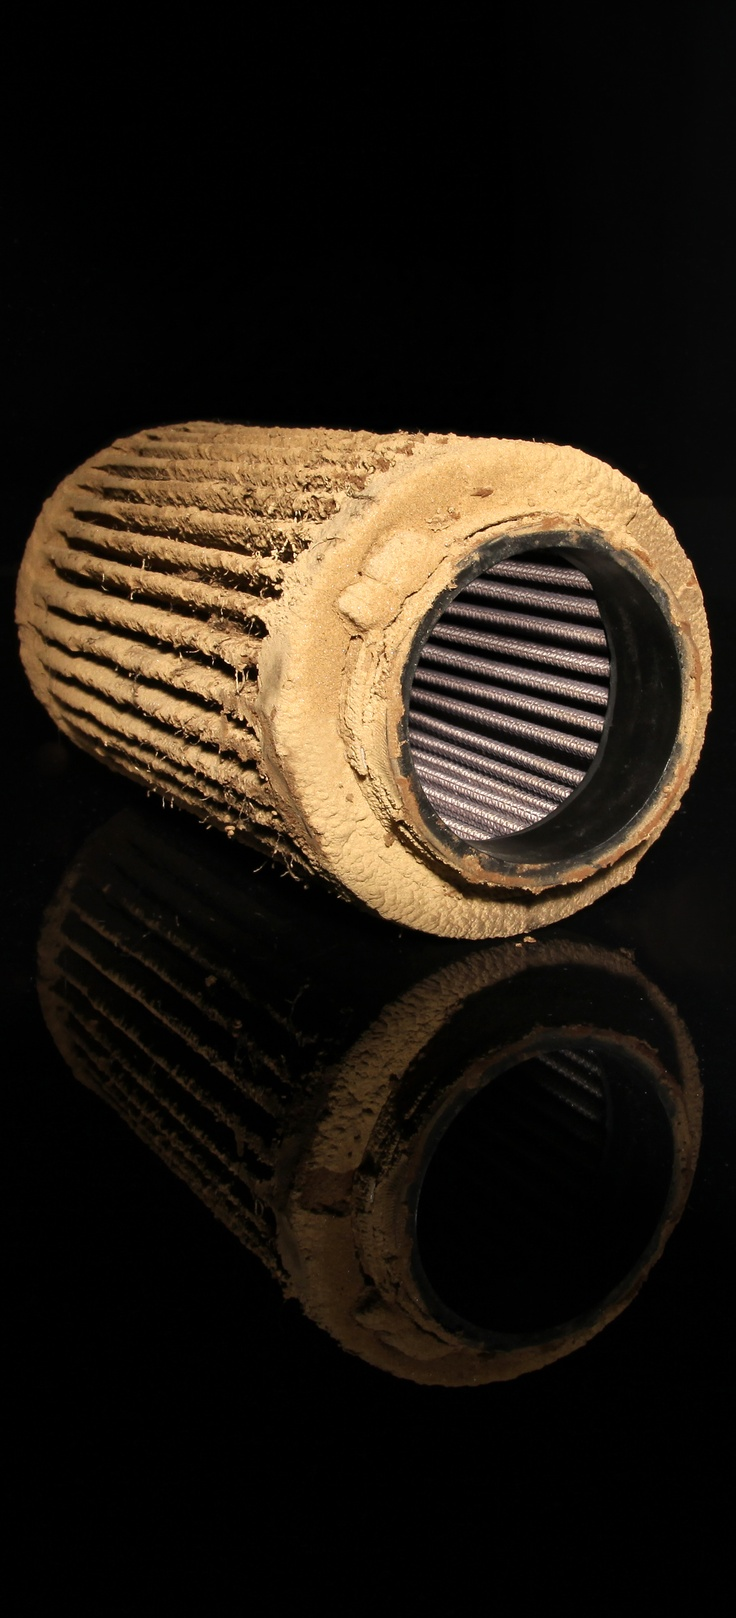 Pretty cool photo to illustrate how well K&N air filters work! Dirty outside, clean inside. #knfilters